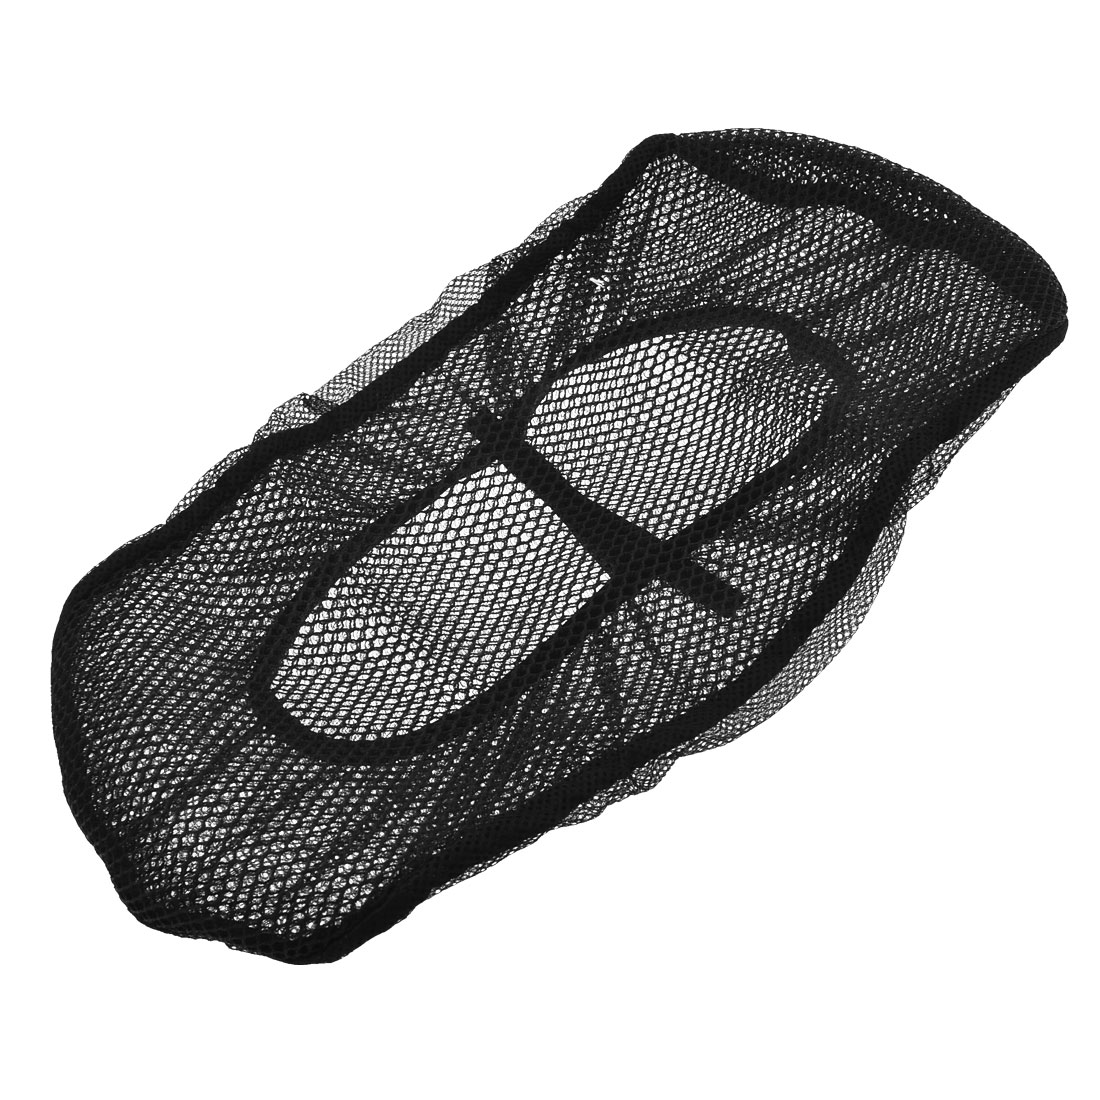 Black Mesh Type Soft Tertolon Seat Cushion Size A for Men Honda CG125